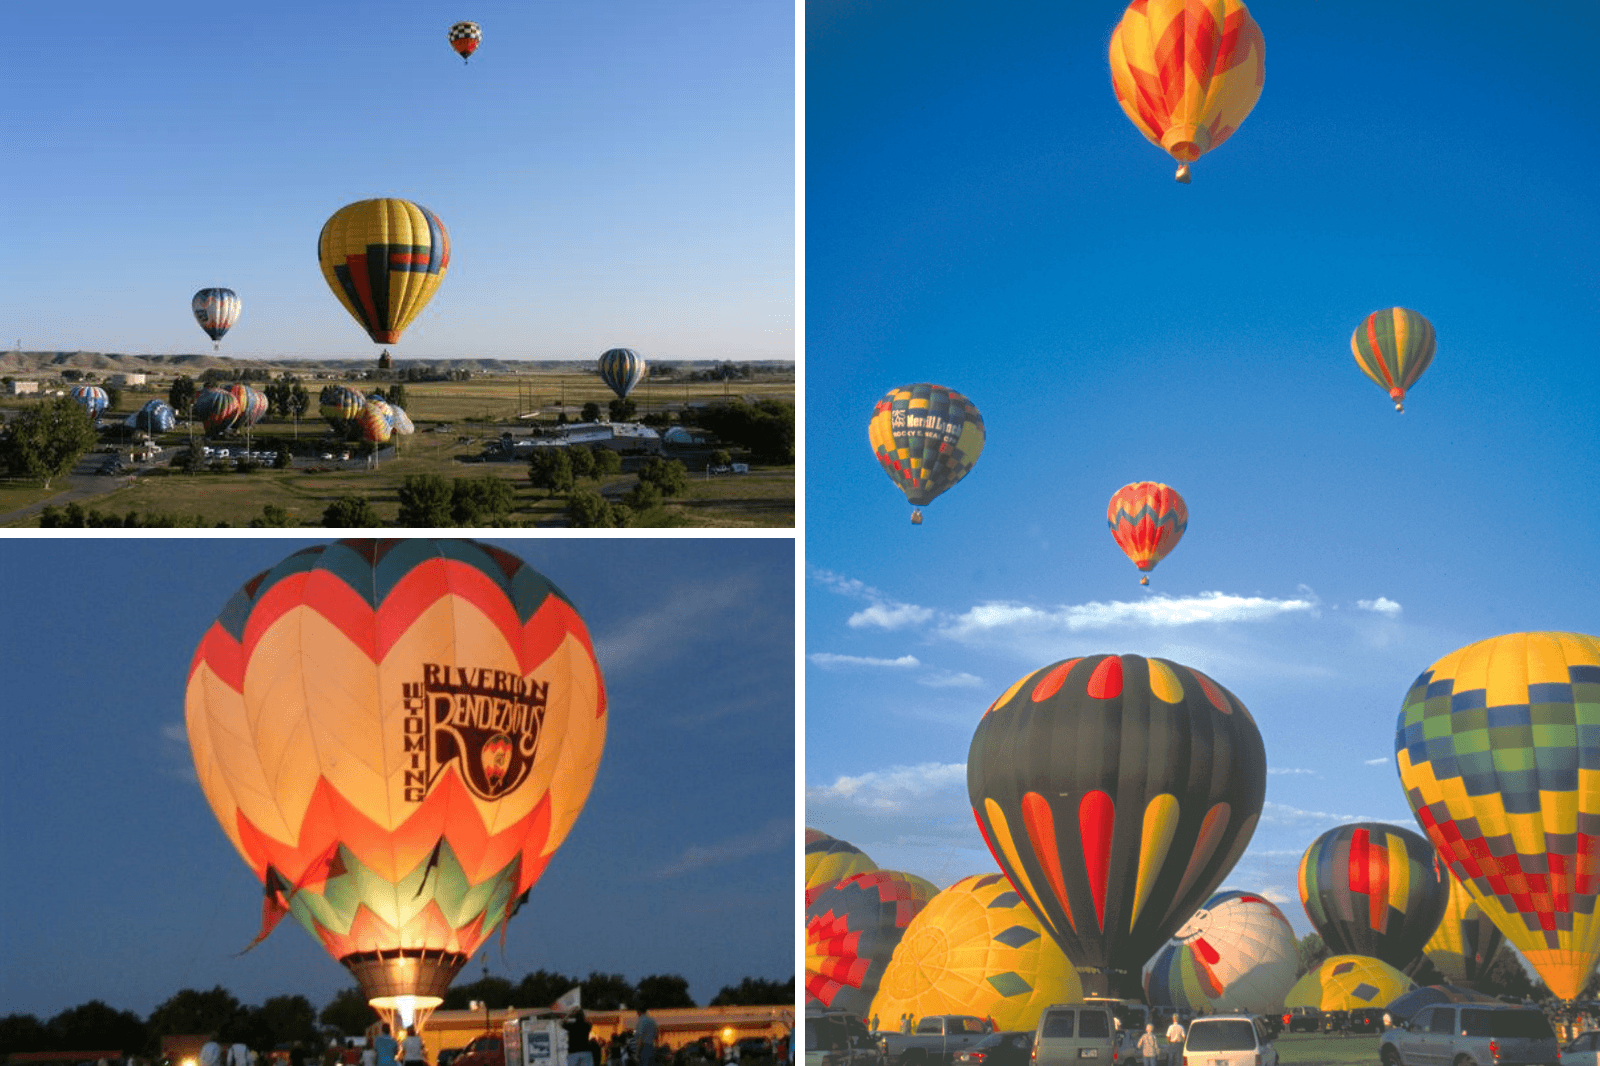 Hot air balloons over Riverton Wyoming as cultural experiences